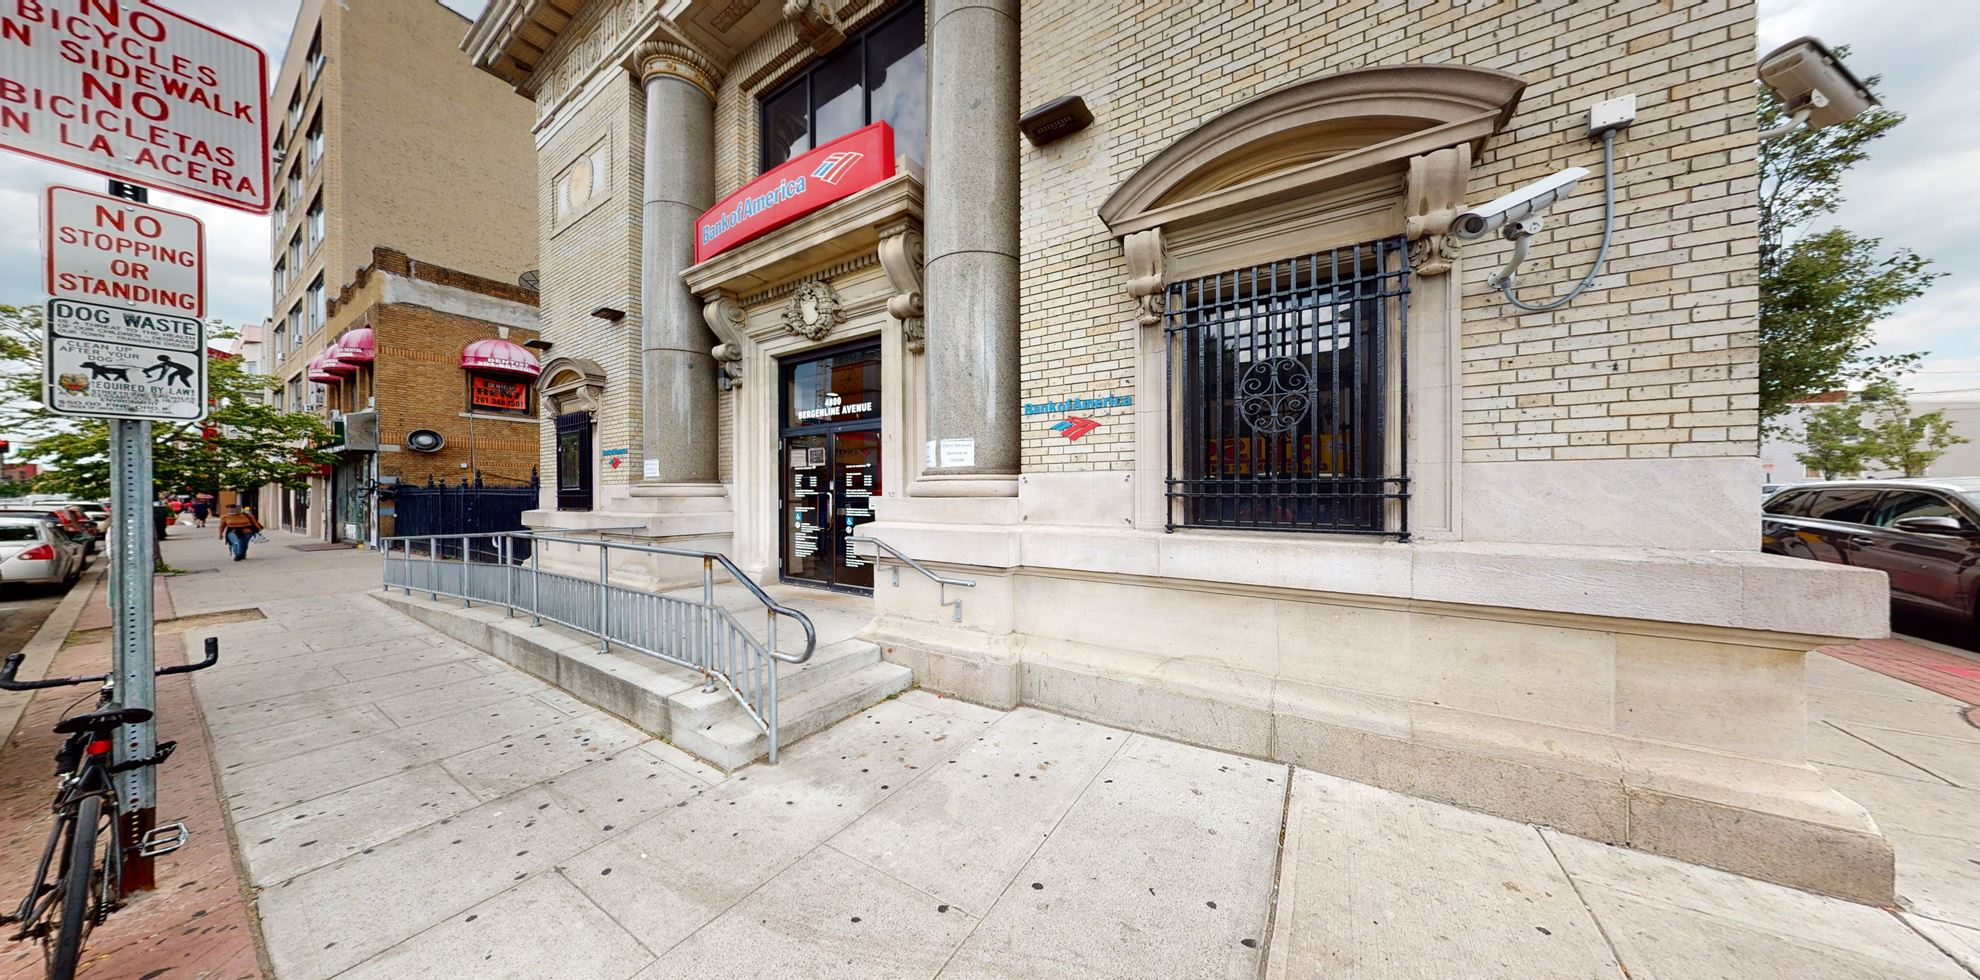 Bank of America financial center with walk-up ATM | 4800 Bergenline Ave, Union City, NJ 07087